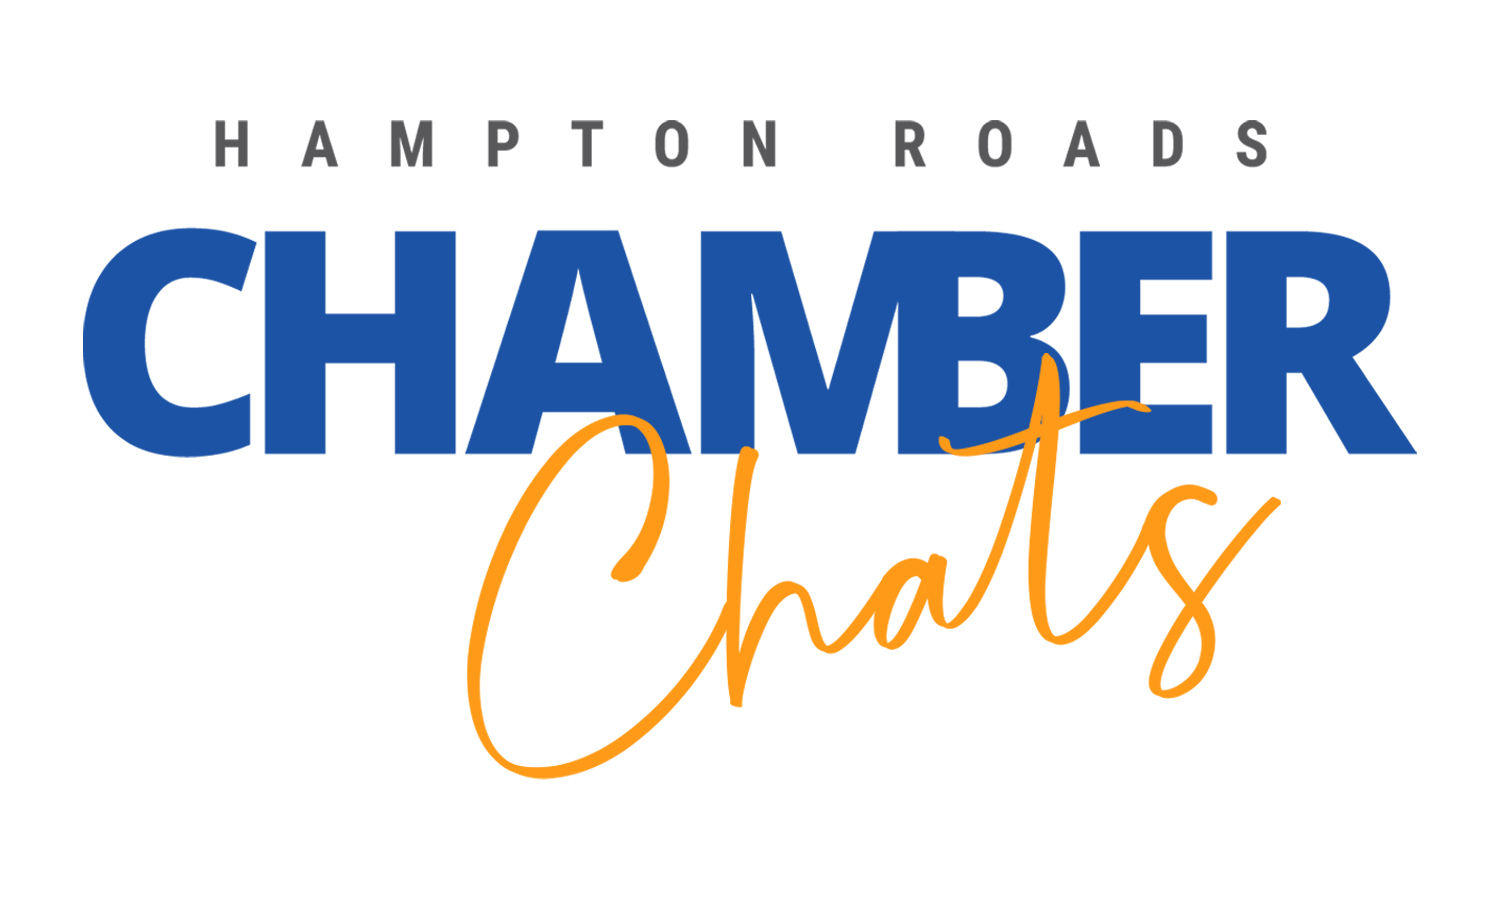 Hampton Roads Chamber Chats - RVA757 Connects with guest, John Martin.